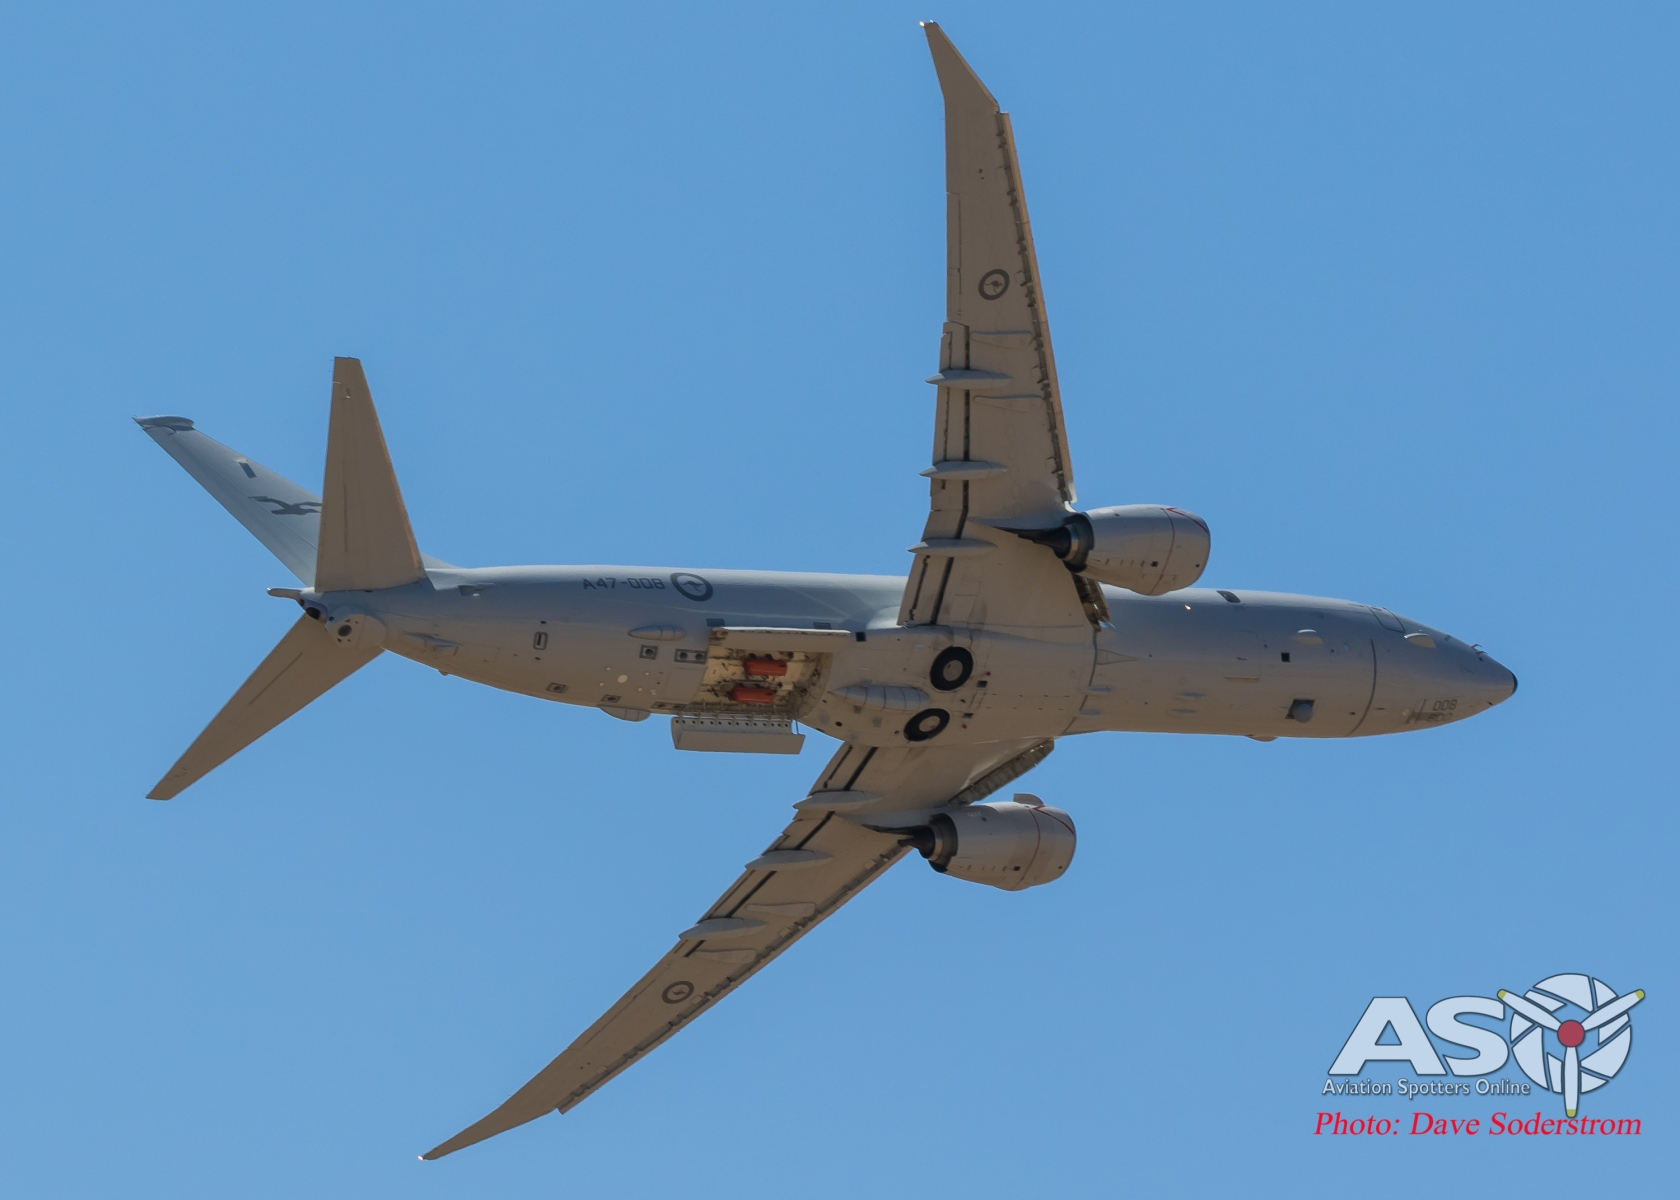 1_ASO-EDN-Airshow-2019-97-1-of-1